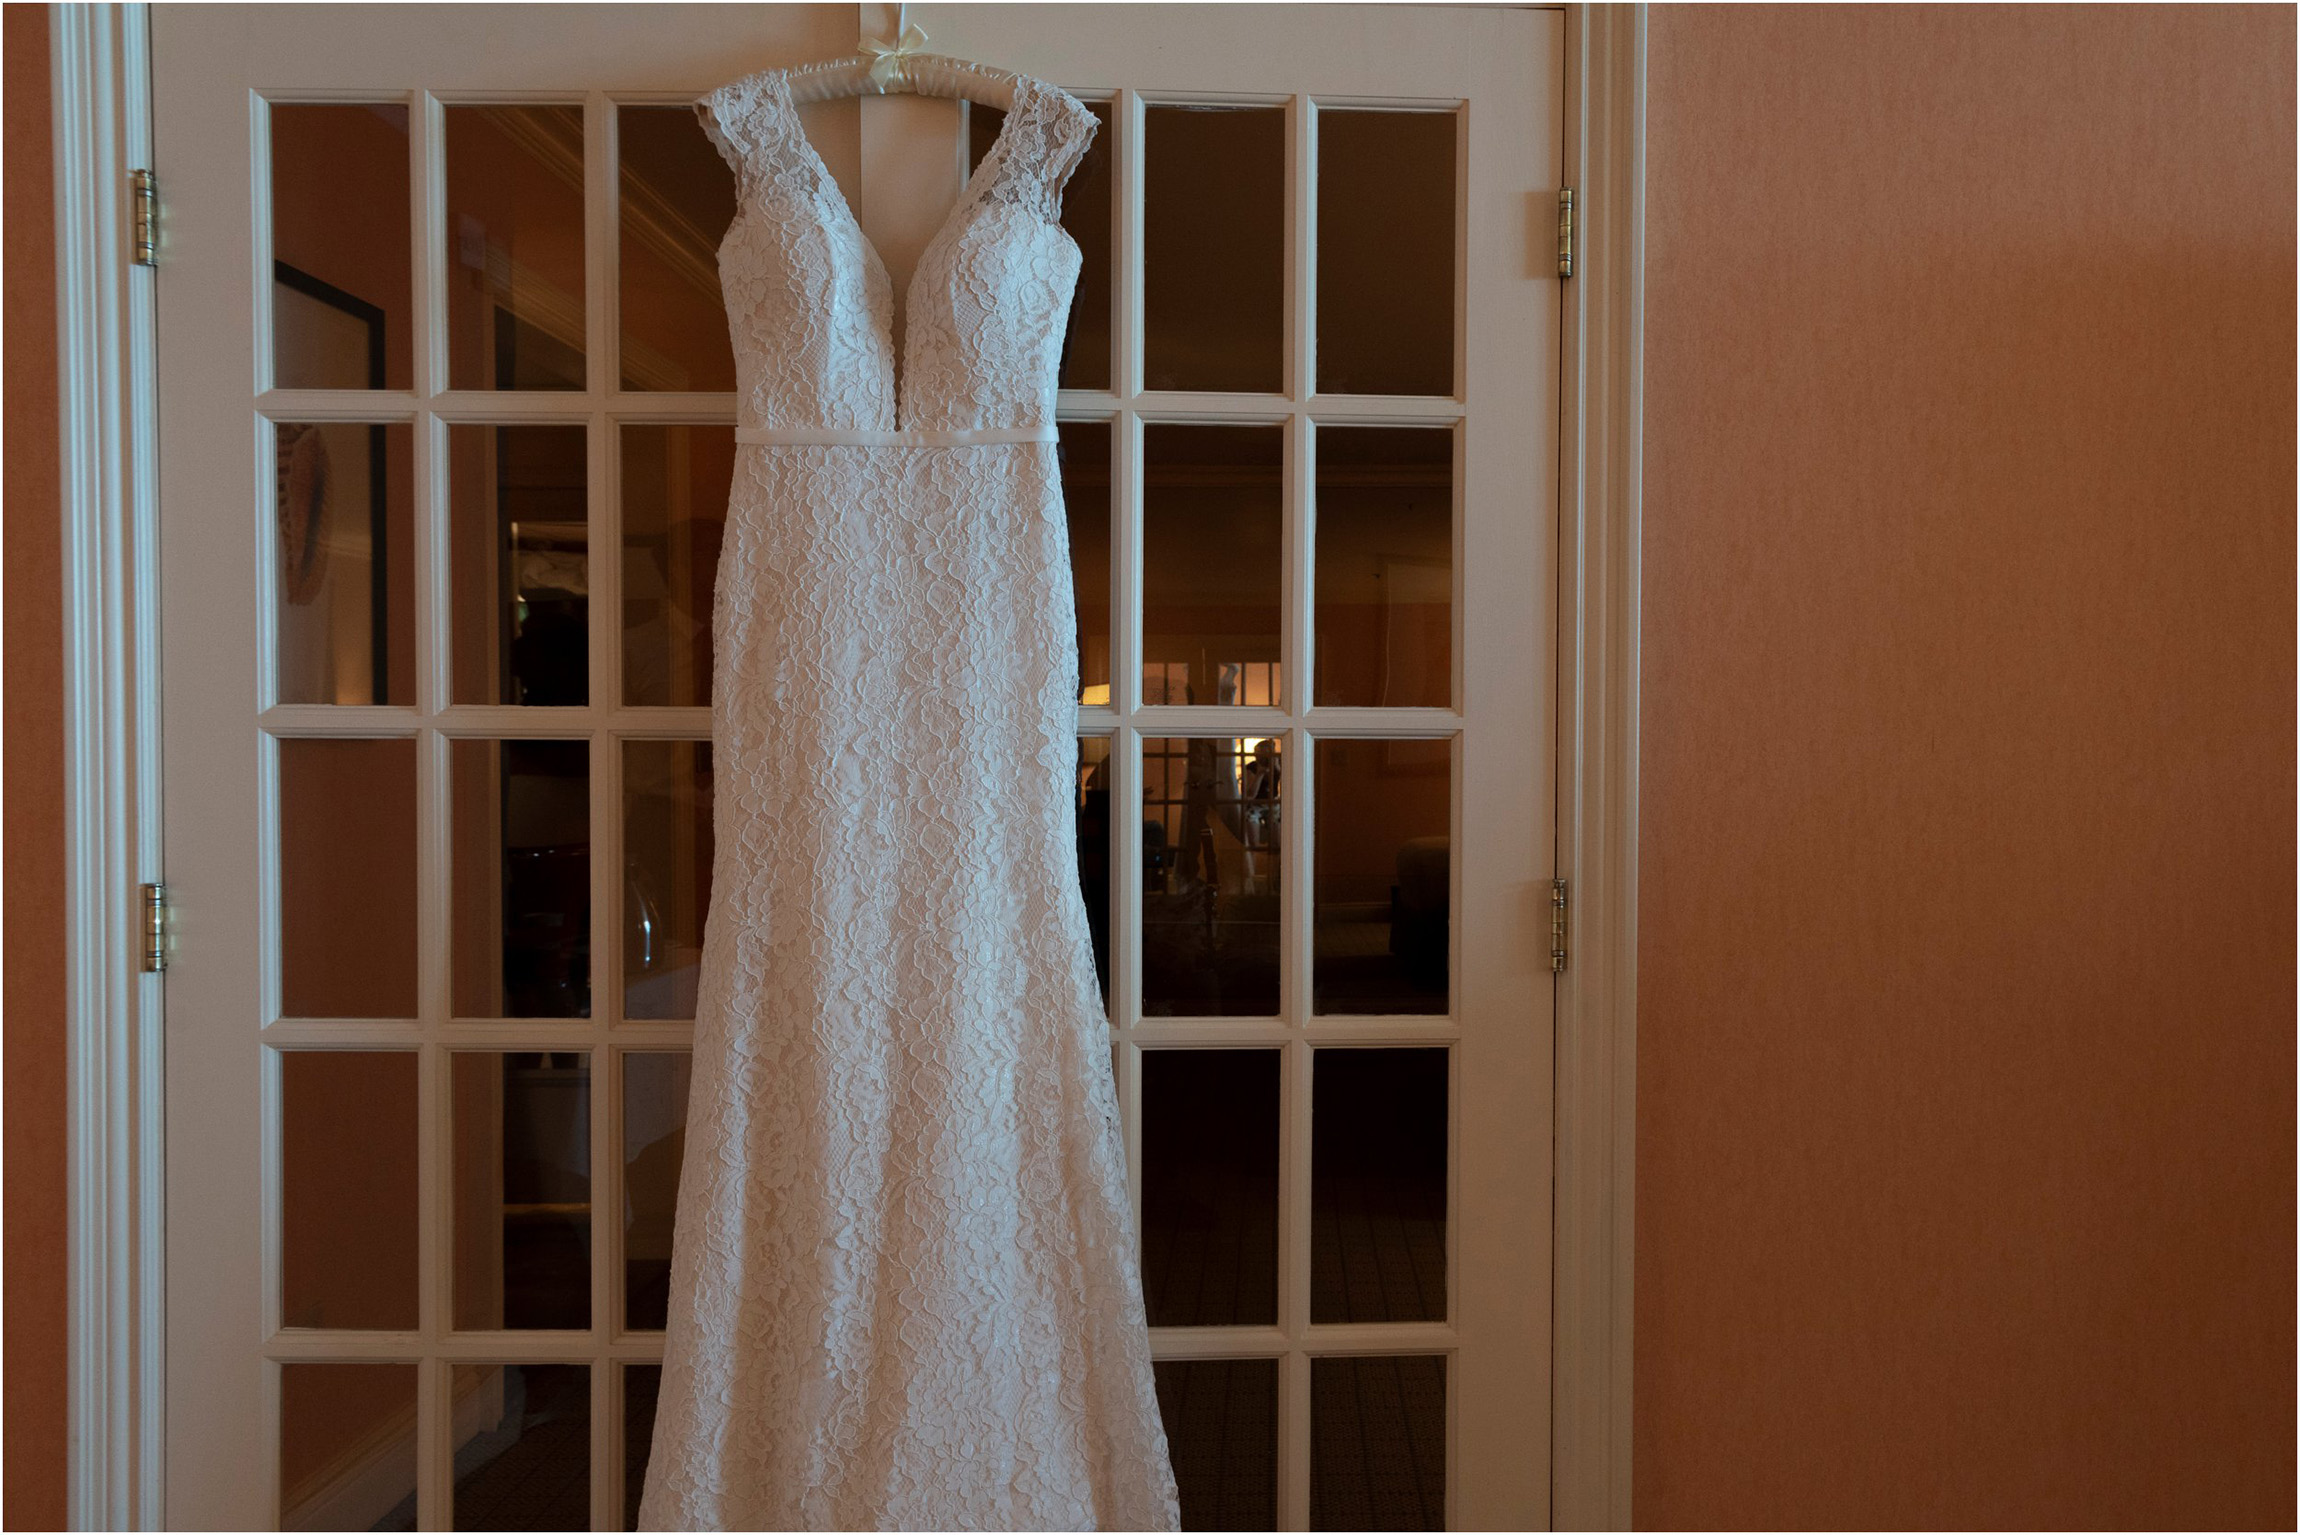 ©FianderFoto_Bermuda Wedding Photographer_Fairmont Southampton_Wedding_Anna_Thomas_003.jpg